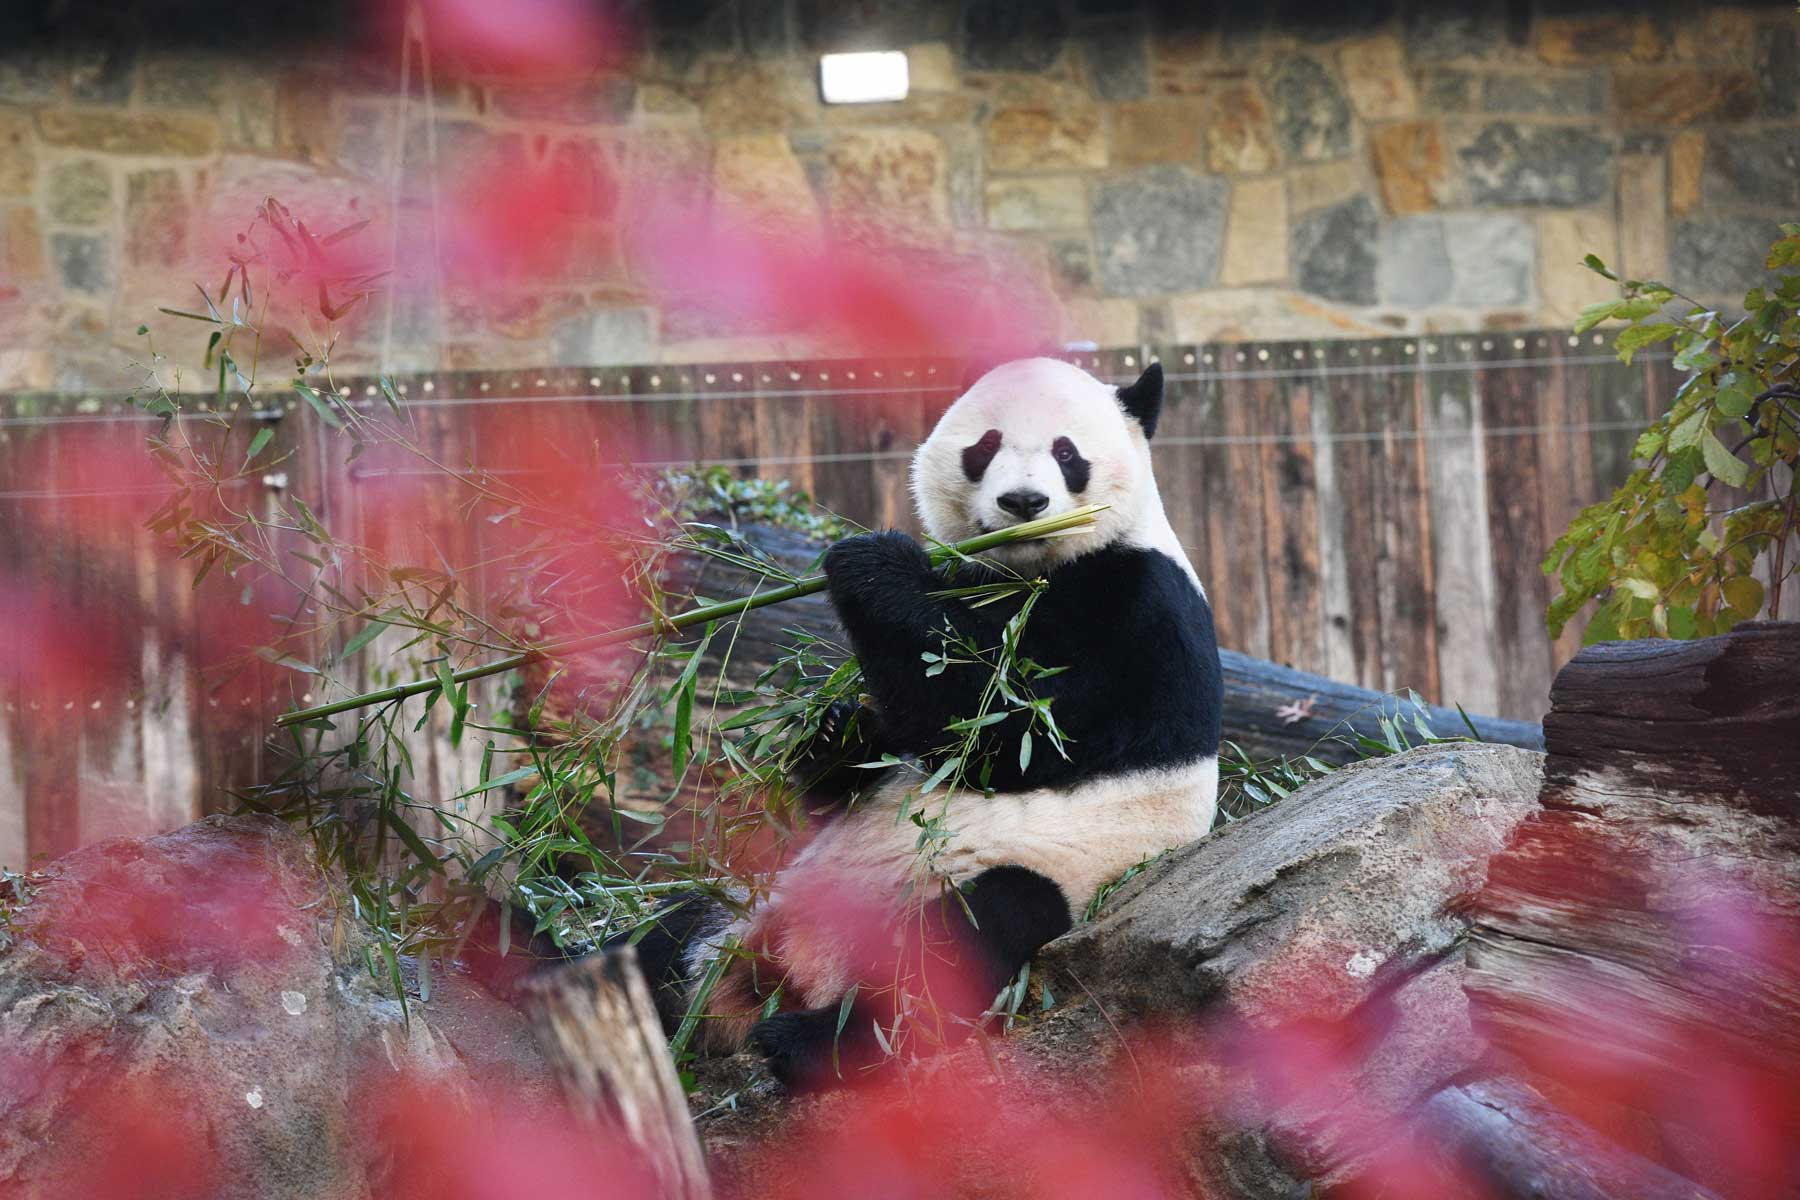 U.S.-born male giant panda Bei Bei is seen before his departure at the Smithsonian's National Zoo in Washington D.C